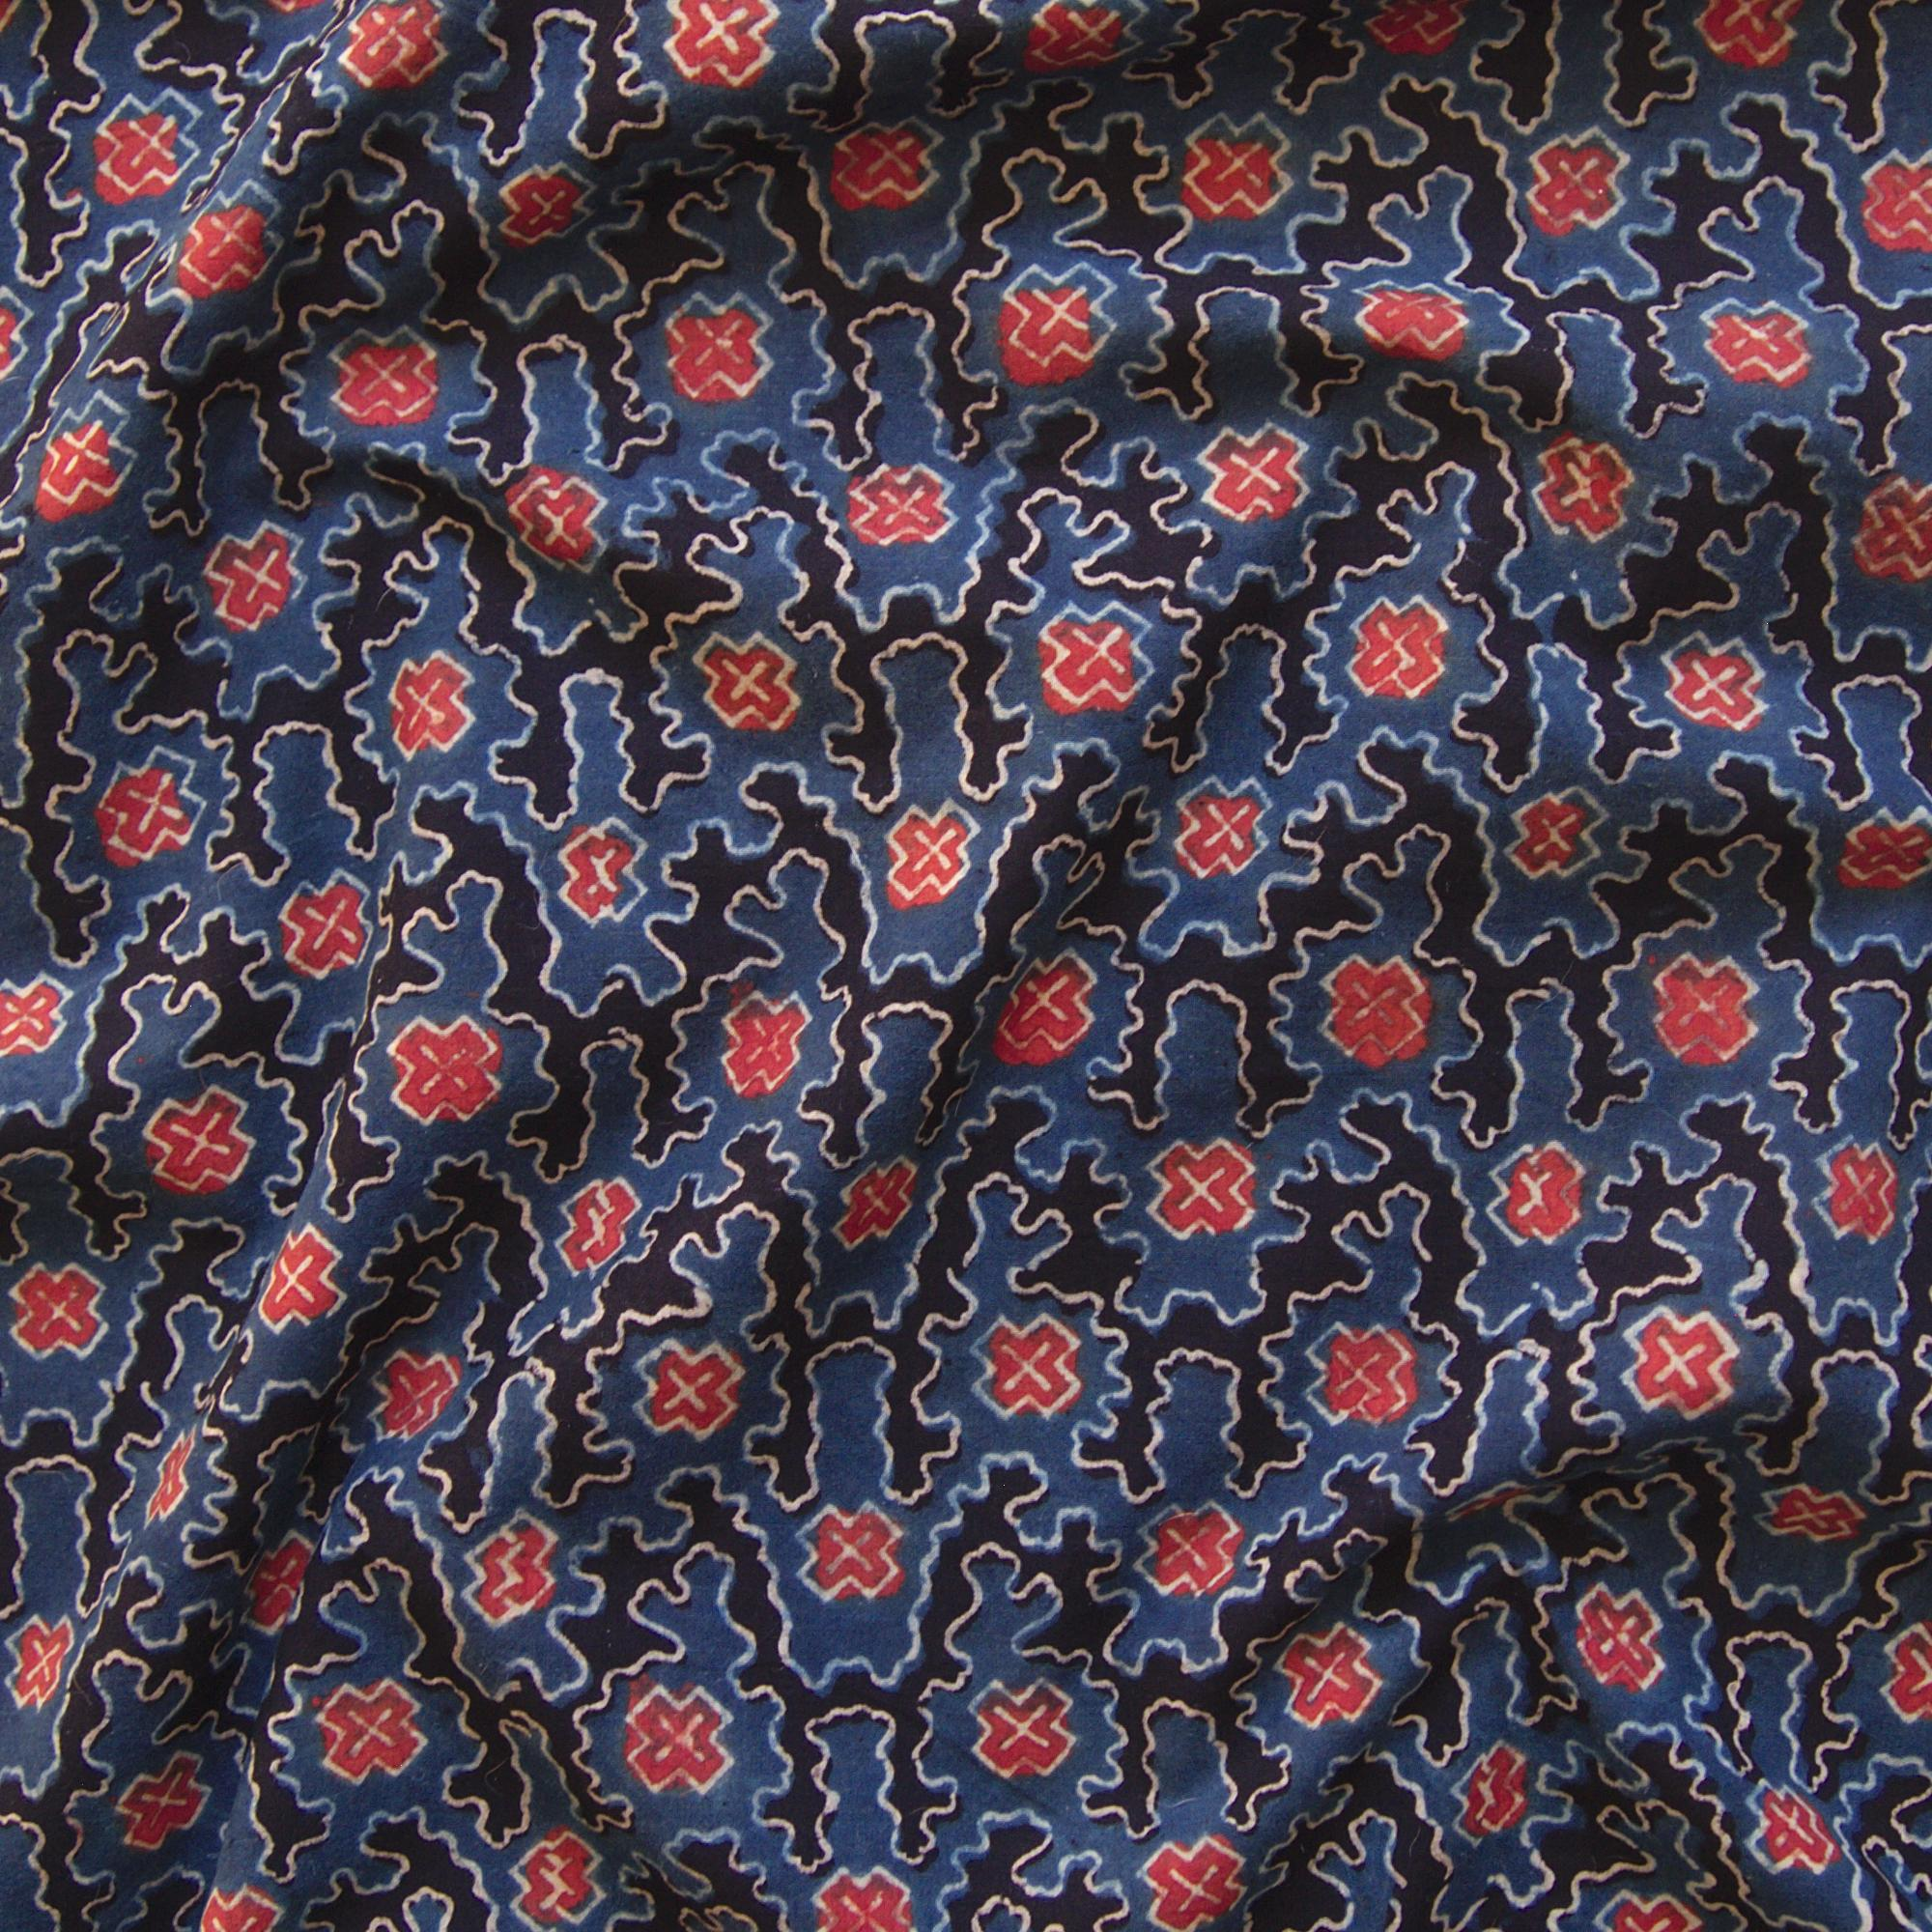 Block Printed Fabric, 100% Cotton, Ajrak Design: Indigo Blue Base, Black, Madder Red, White Cloud. Contrast